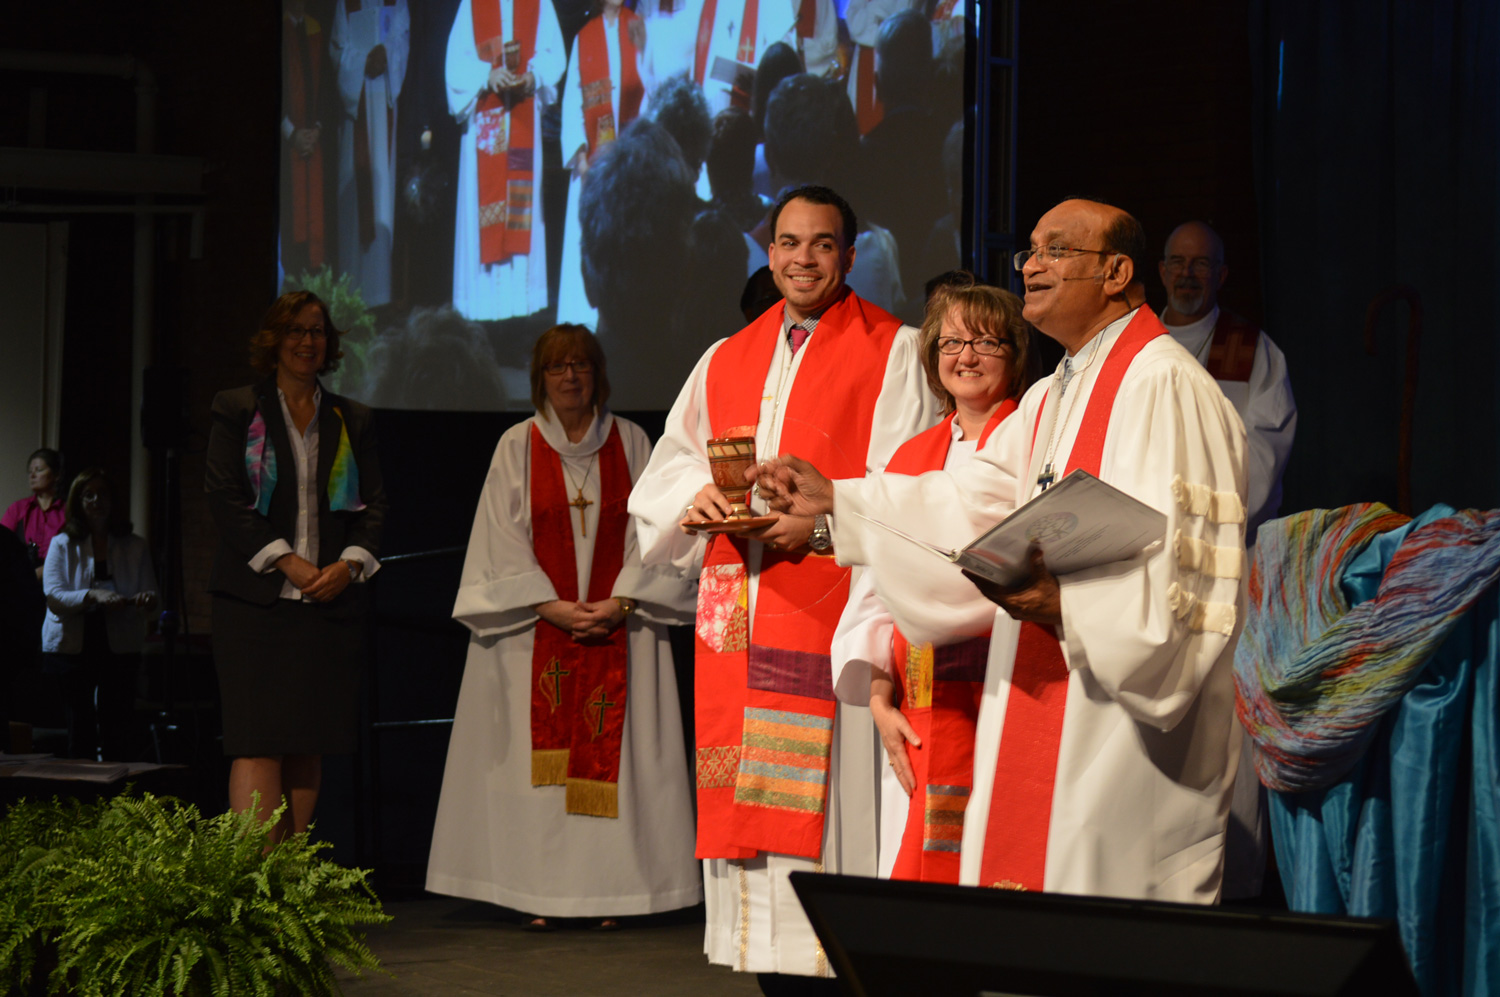 Bishop and new clergy prepare to serve communion